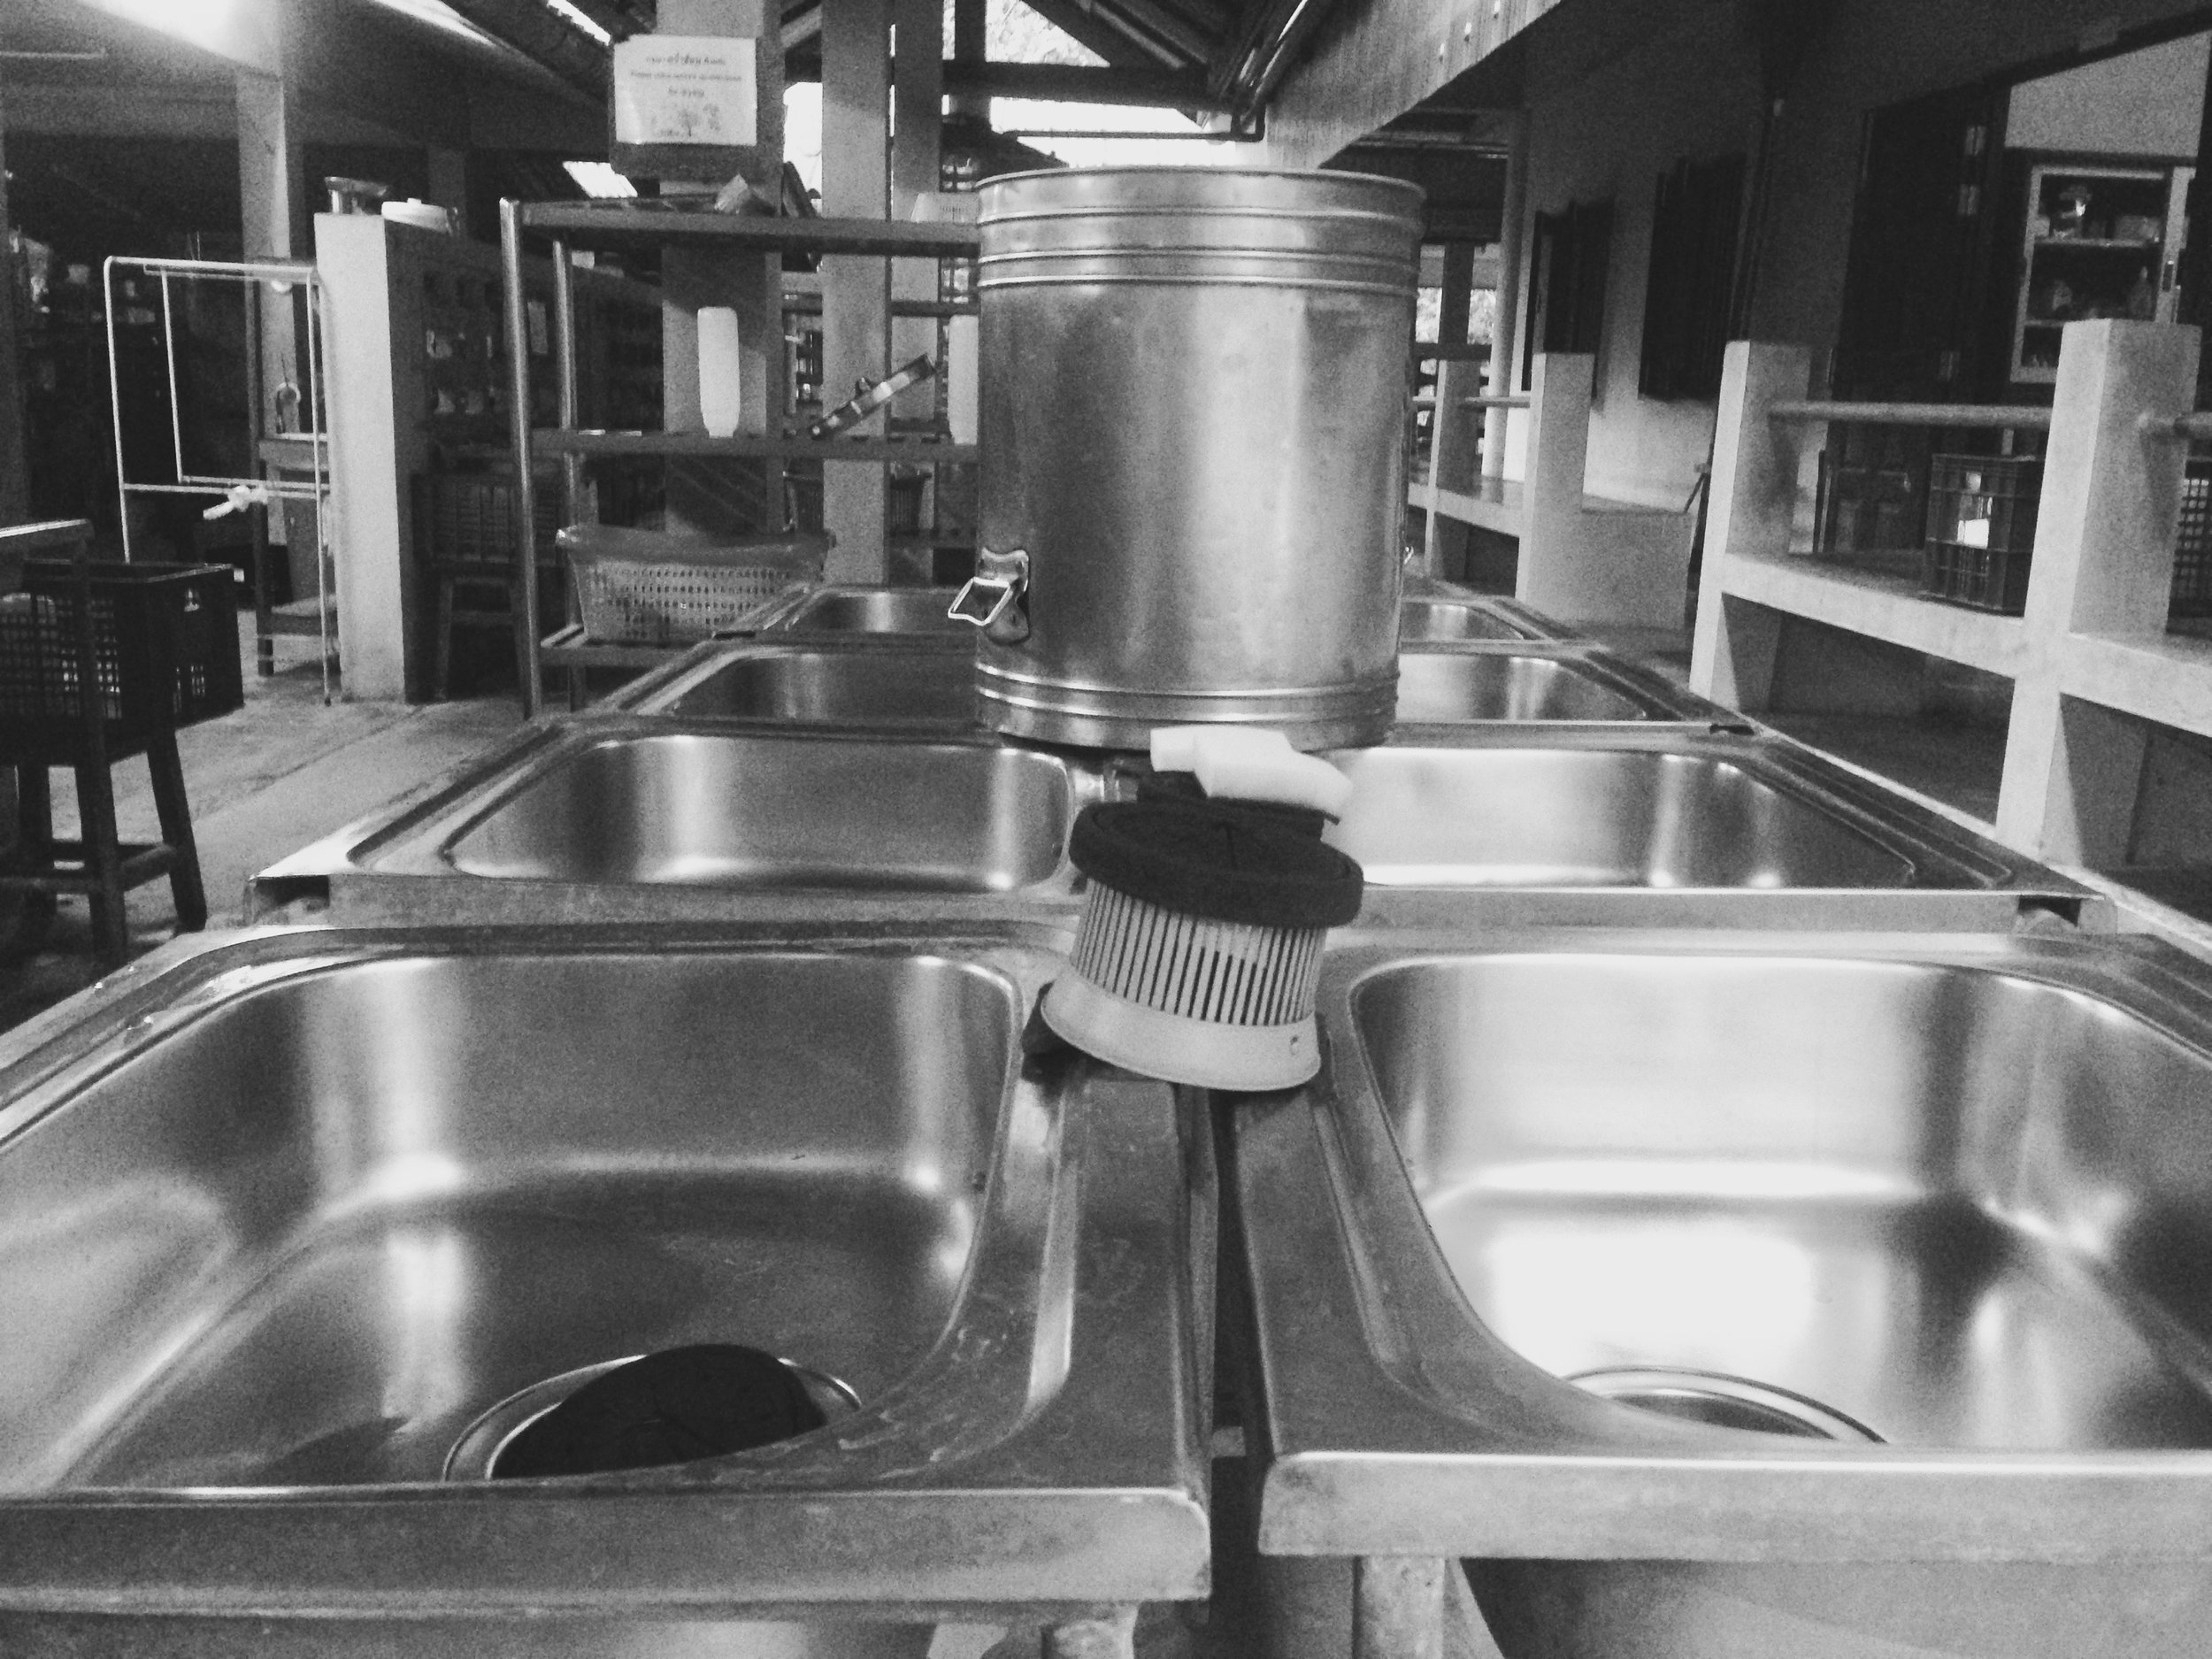 After meals, men and women enter their separate washing spaces where we do our individual dishes.